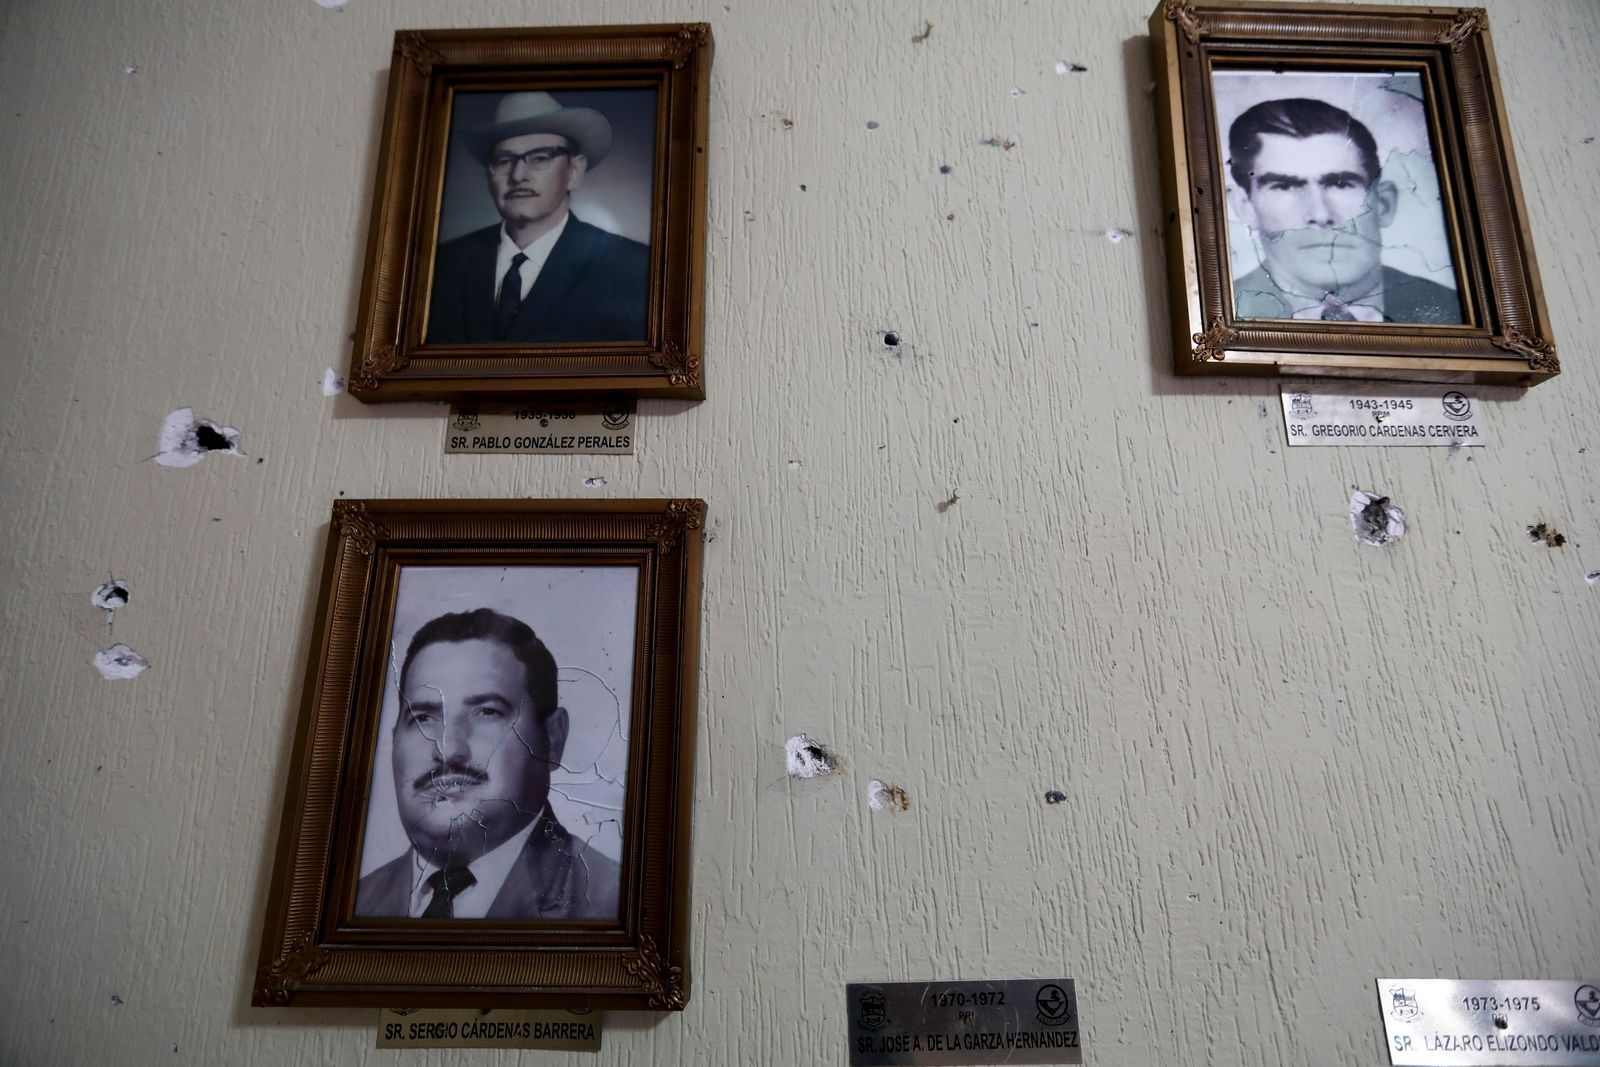 Portraits of former mayors of Villa Union hang on a wall riddled with bullet holes after a gunbattle, inside City Hall, in Villa Union, Mexico, Monday, Dec. 2, 2019. The small town near the U.S.-Mexico border began cleaning up Monday even as fear persisted after 22 people were killed in a weekend gunbattle between a heavily armed drug cartel assault group and security forces. (AP Photo/Eduardo Verdugo)